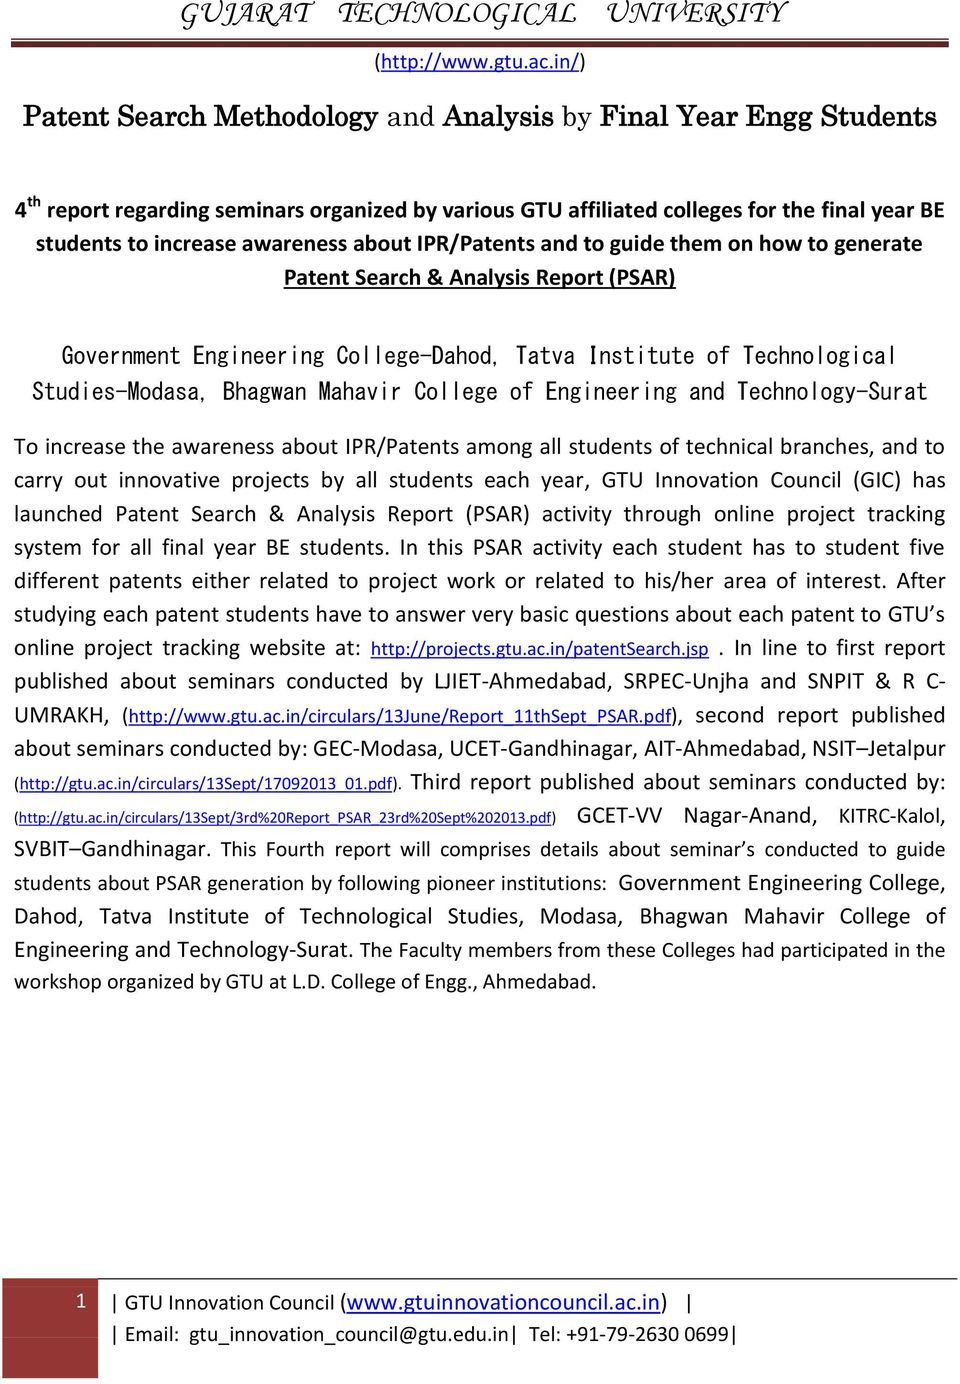 GUJARAT TECHNOLOGICAL UNIVERSITY - PDF